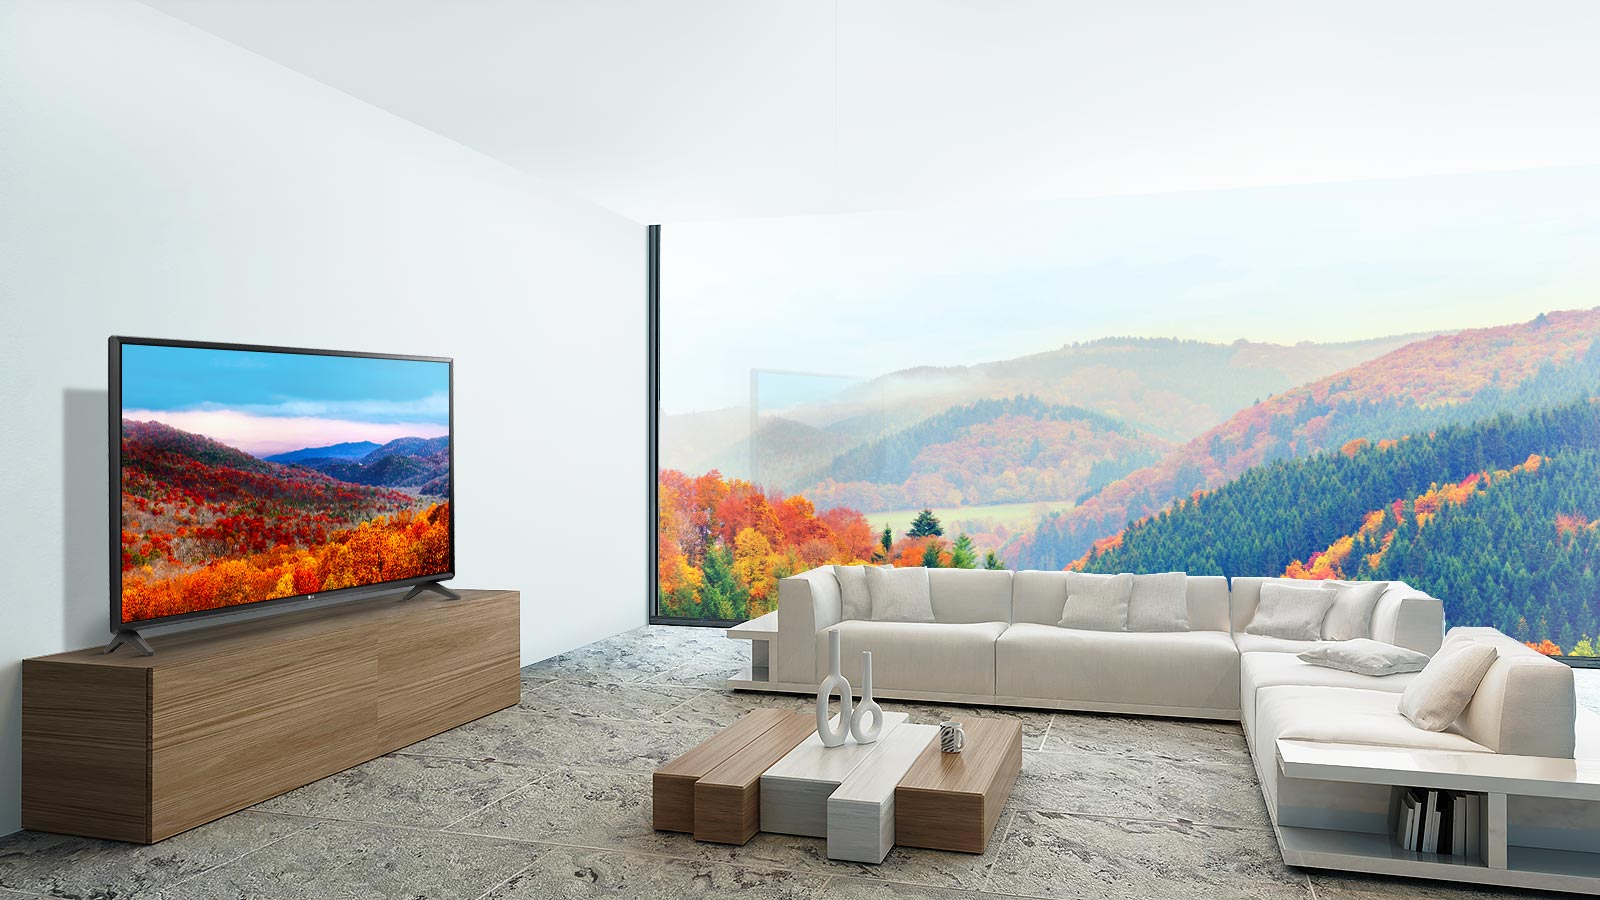 Modern TV Design - Your television is presented with minimal bezels and sleek modern lines providing a premium construction and a touch of real class to any living room.